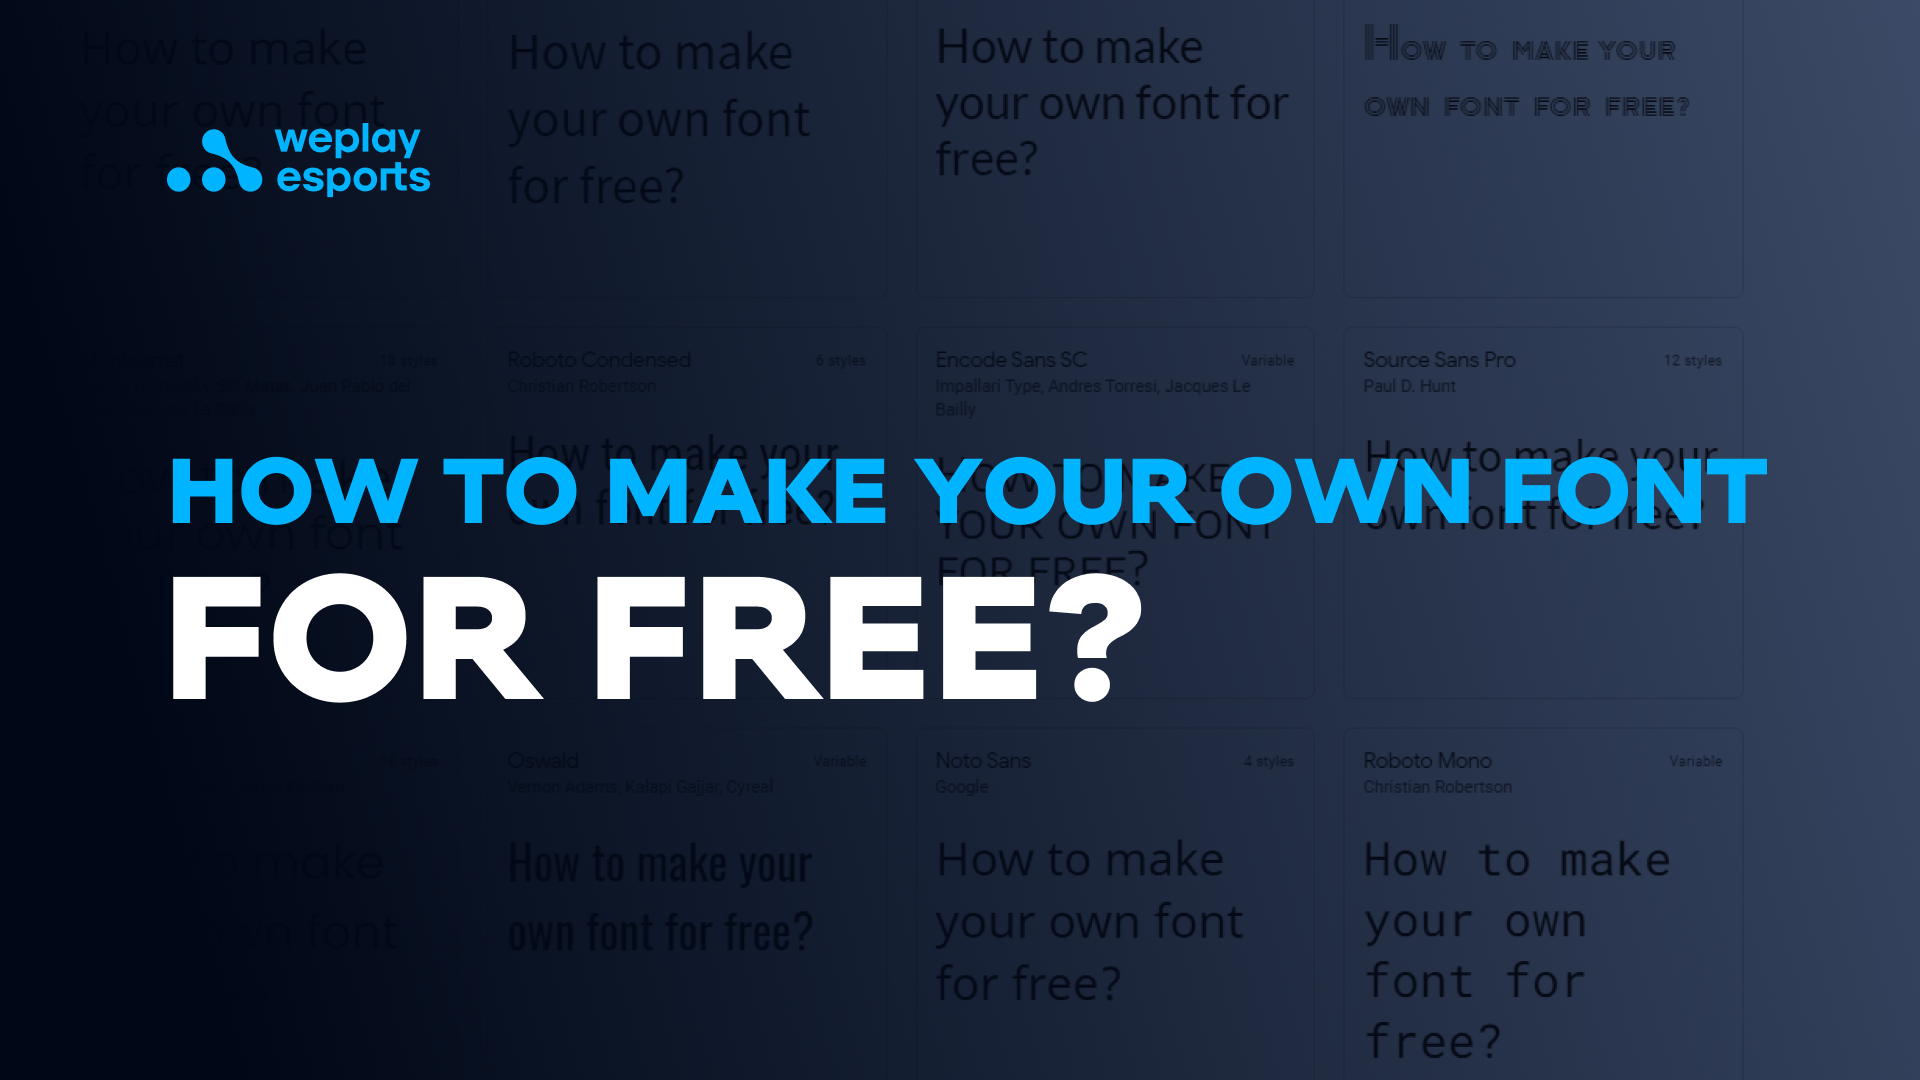 How to make your own font for free?